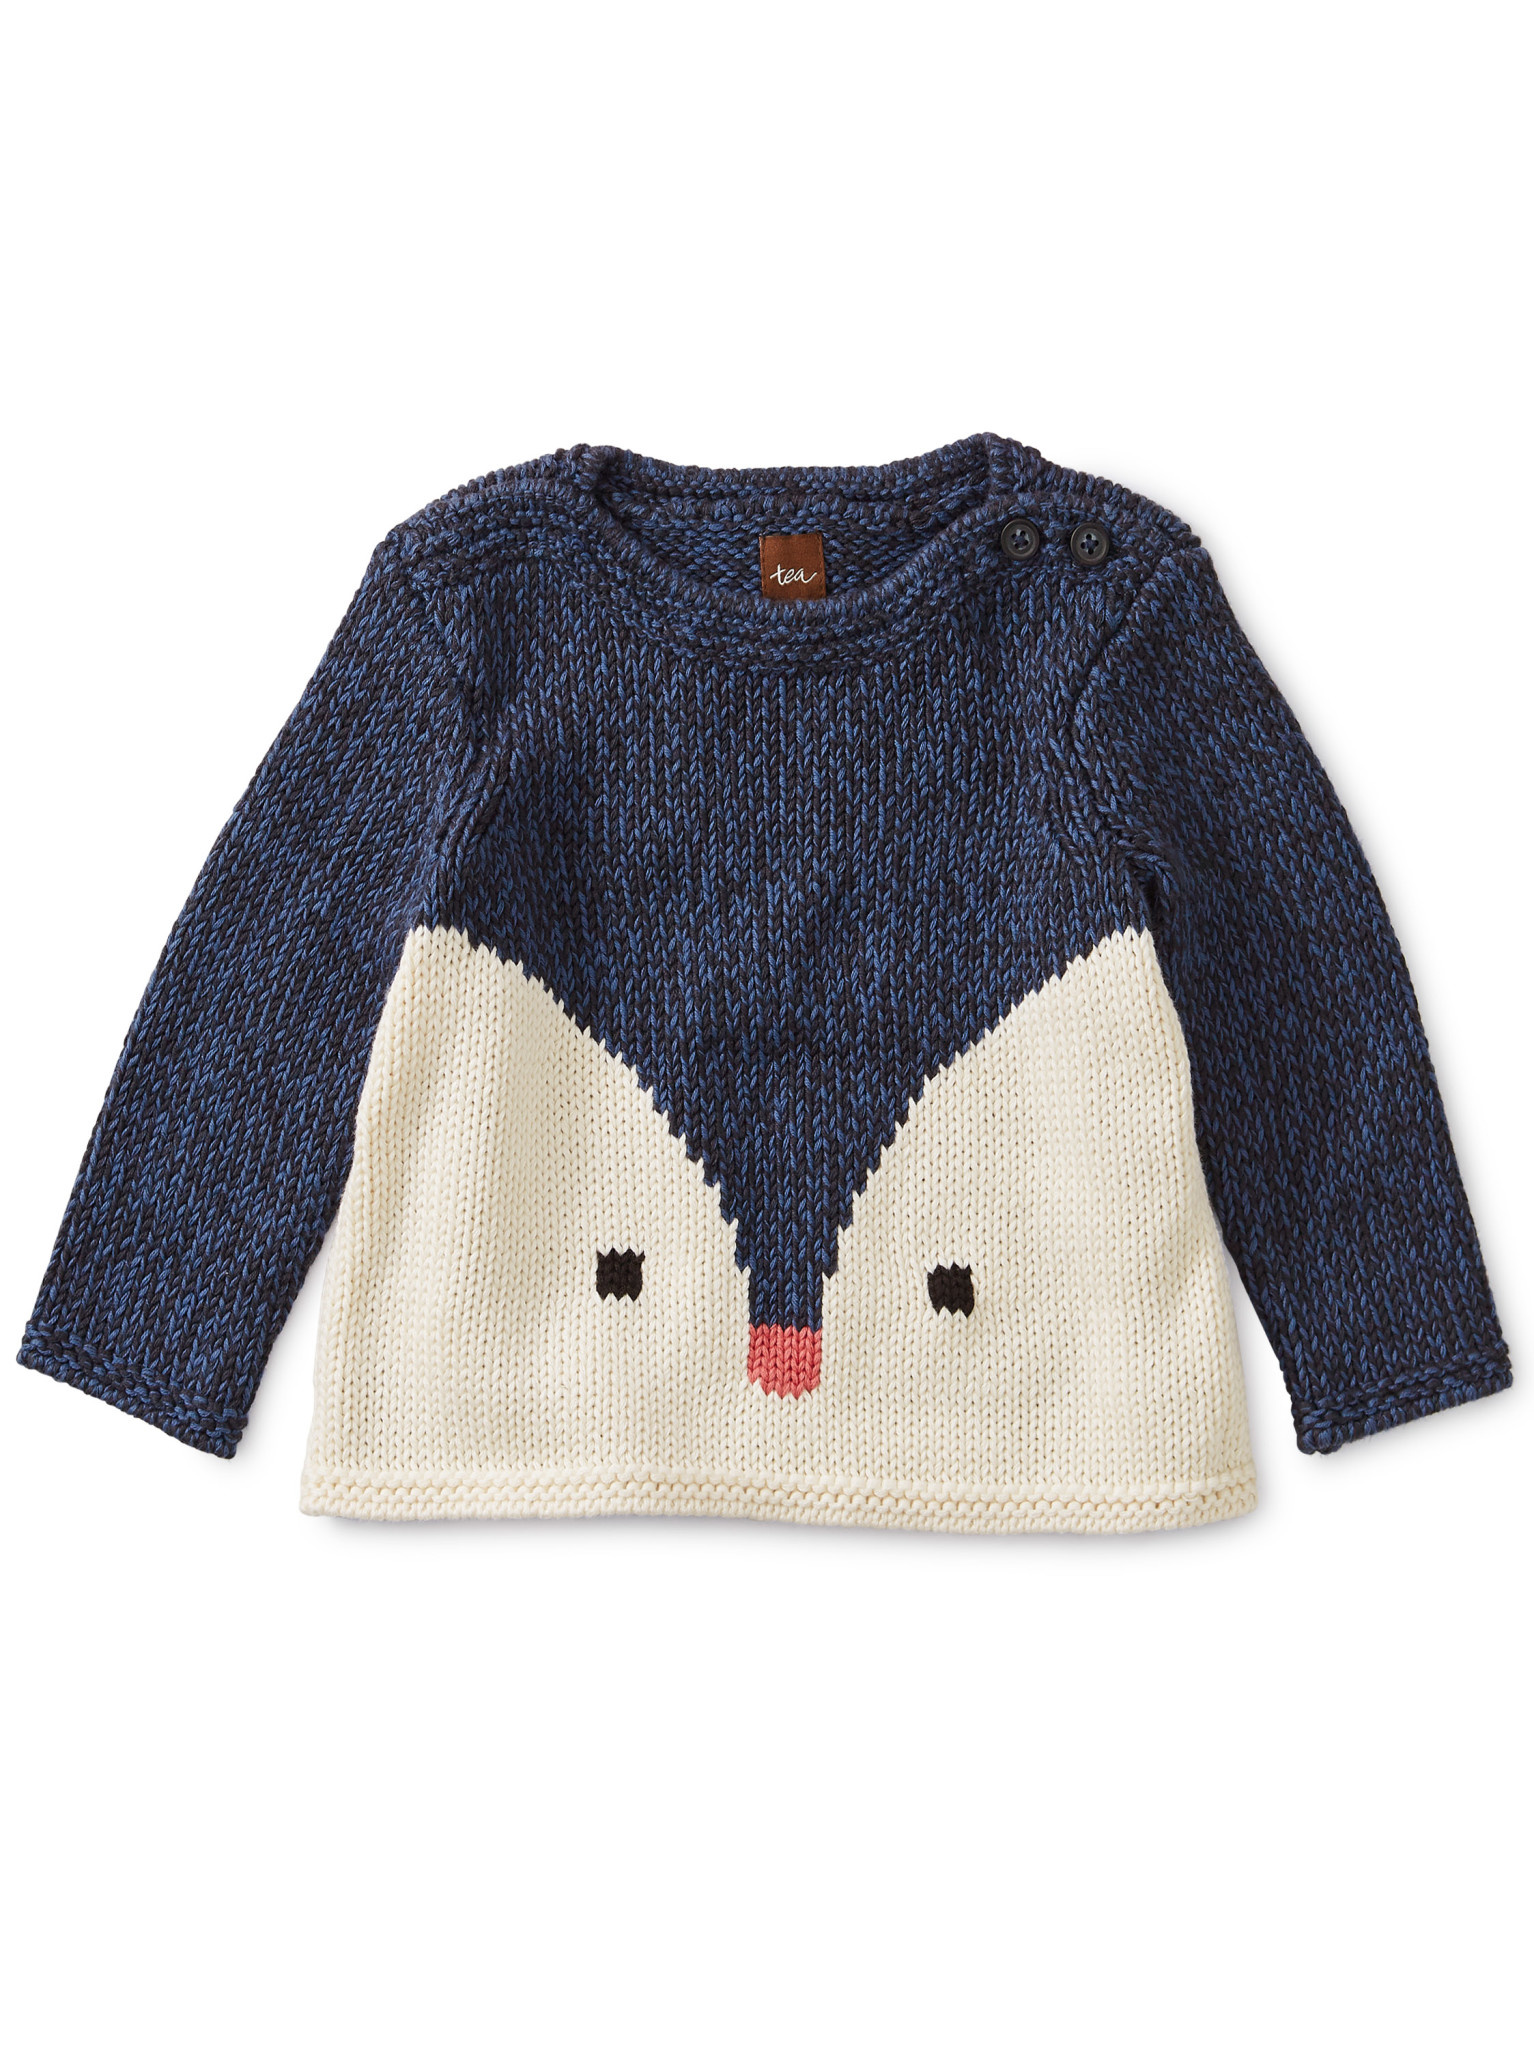 Tea Collection Critter Sweater